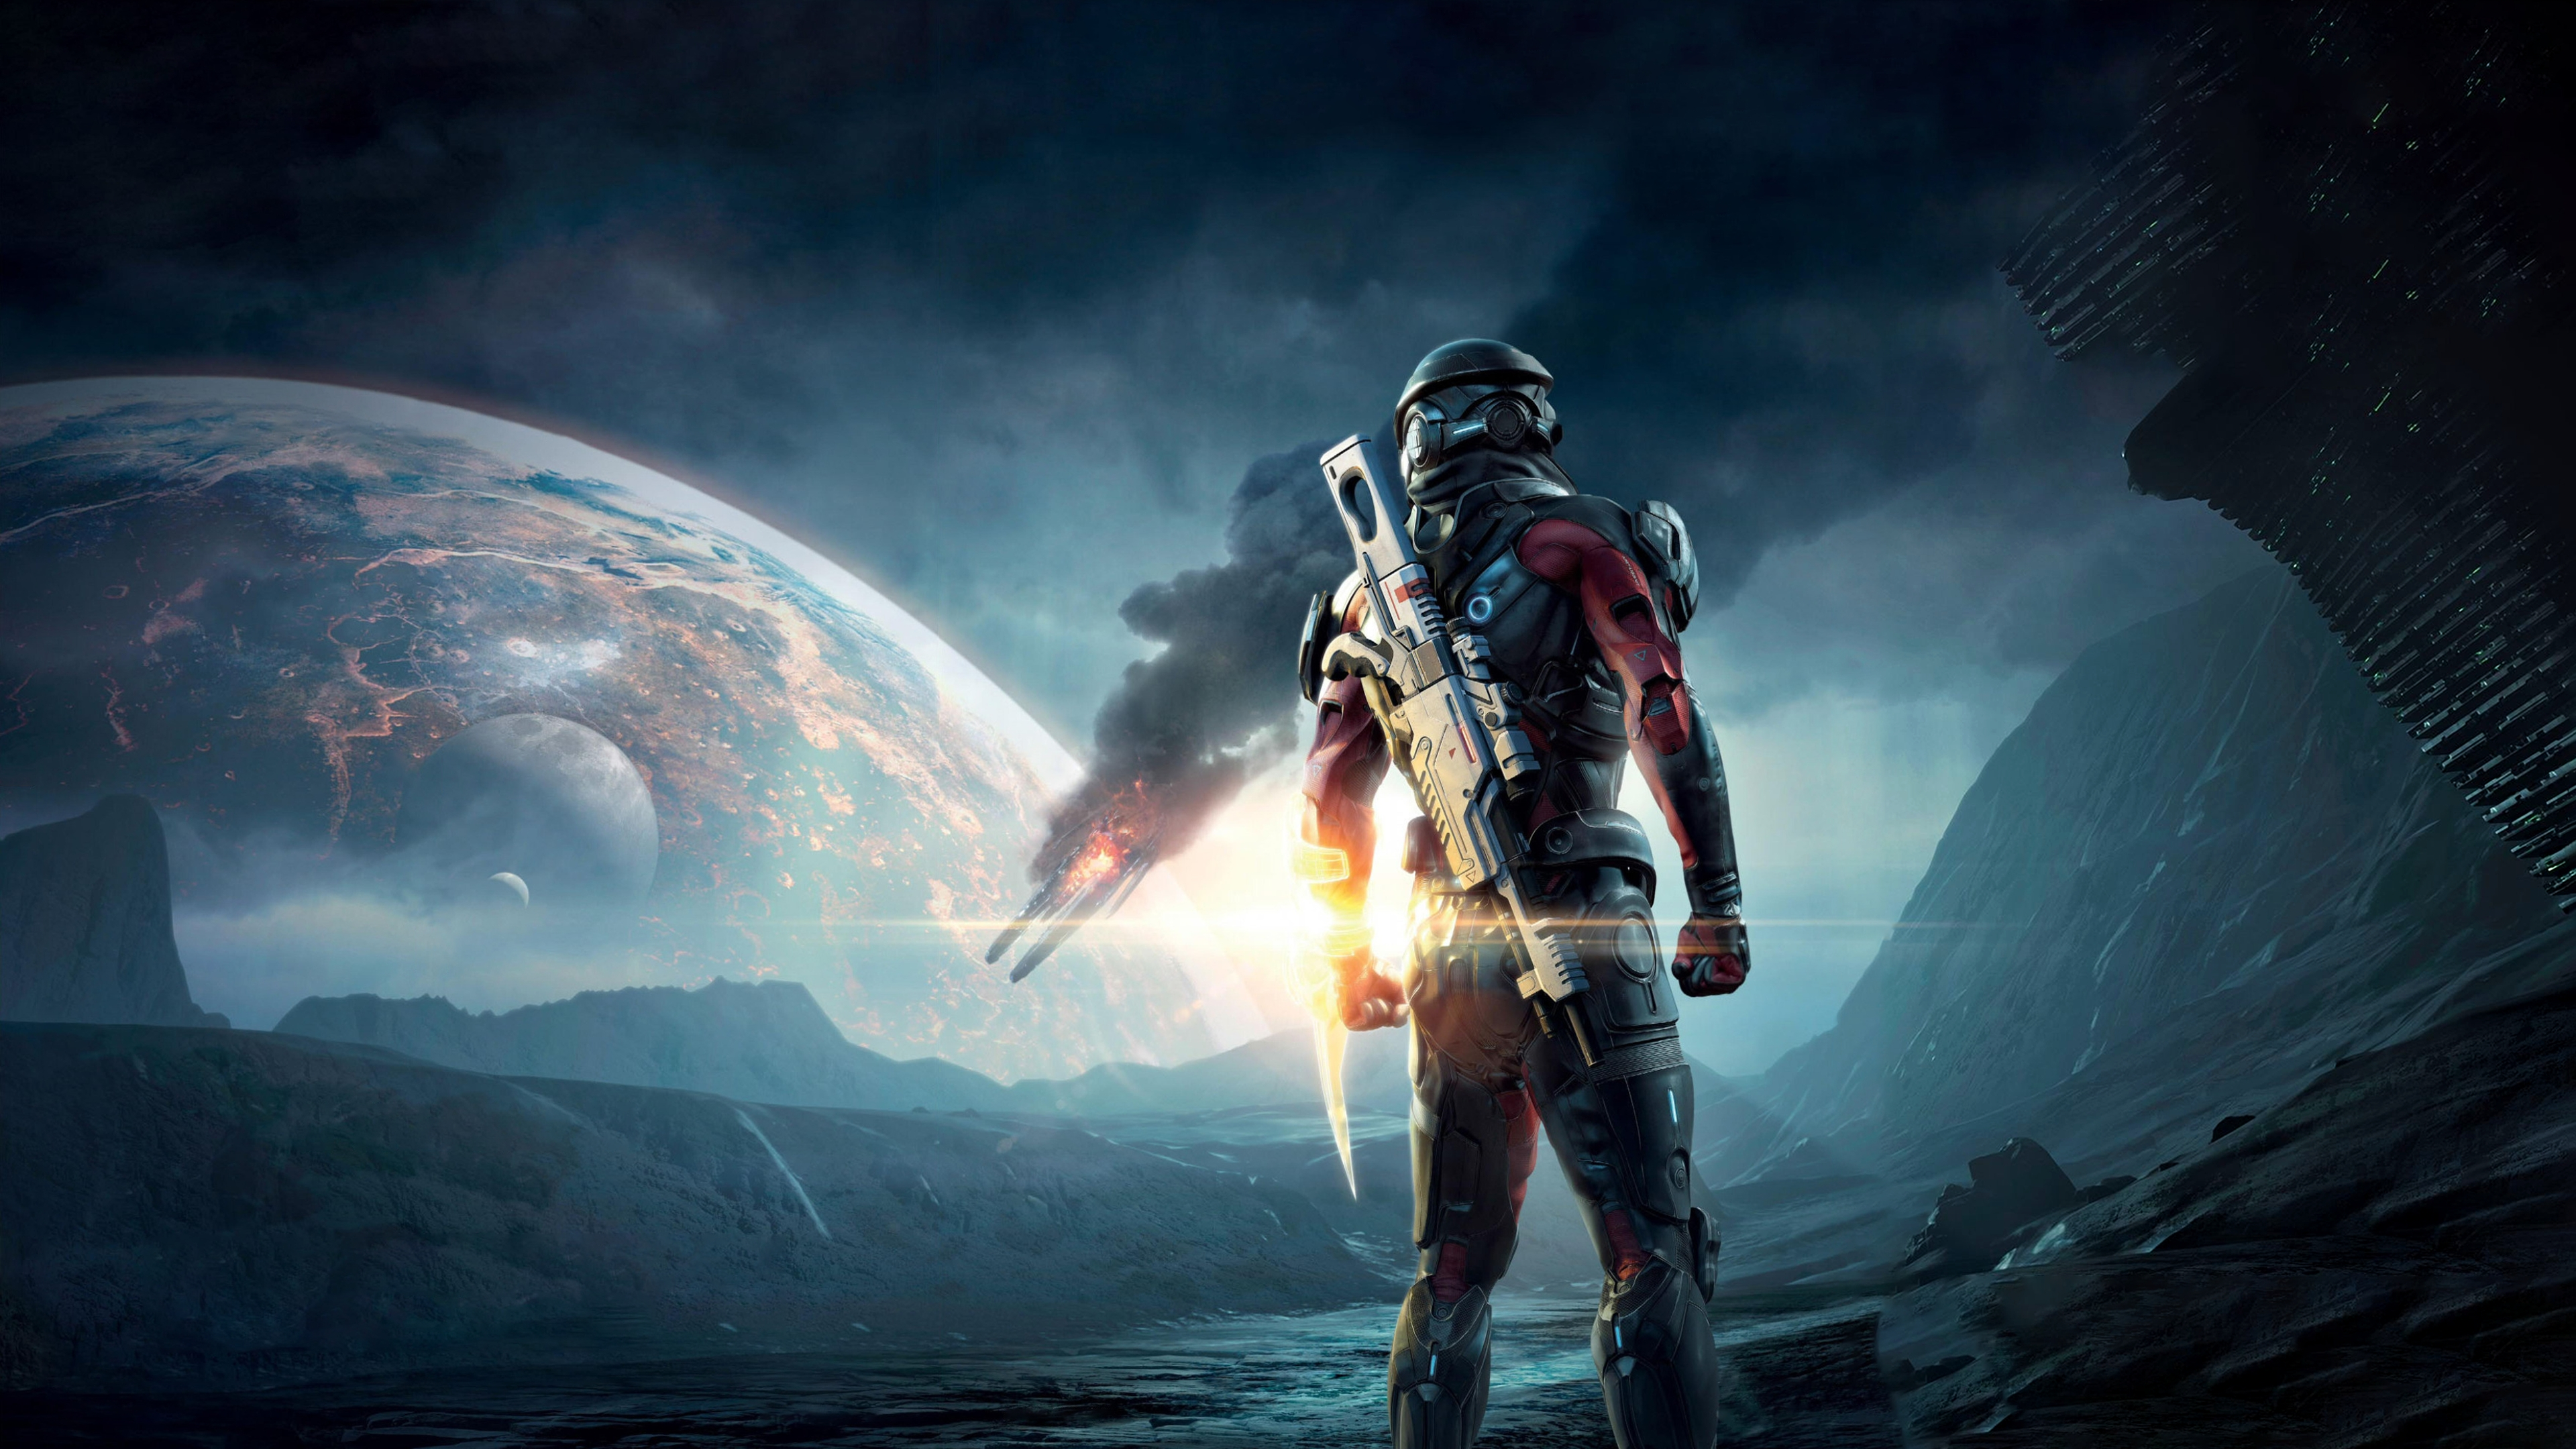 10 Best Mass Effect Wall Paper FULL HD 1080p For PC Desktop